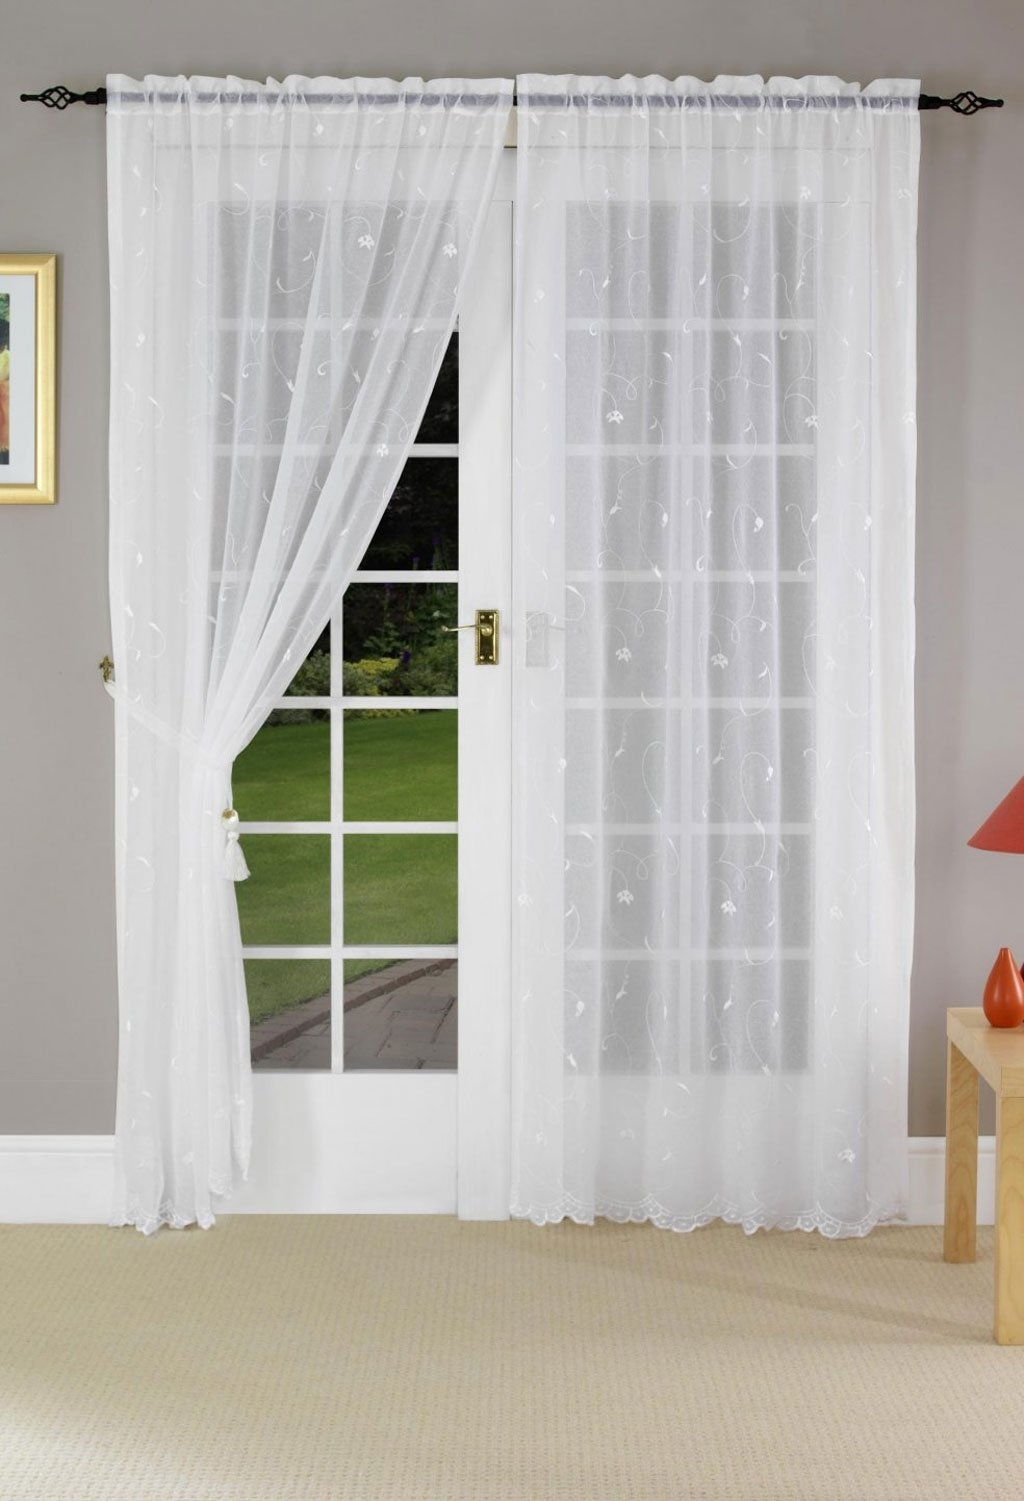 10 Stylish Curtain Ideas For French Doors blinds for patio doors ideas melissa door design